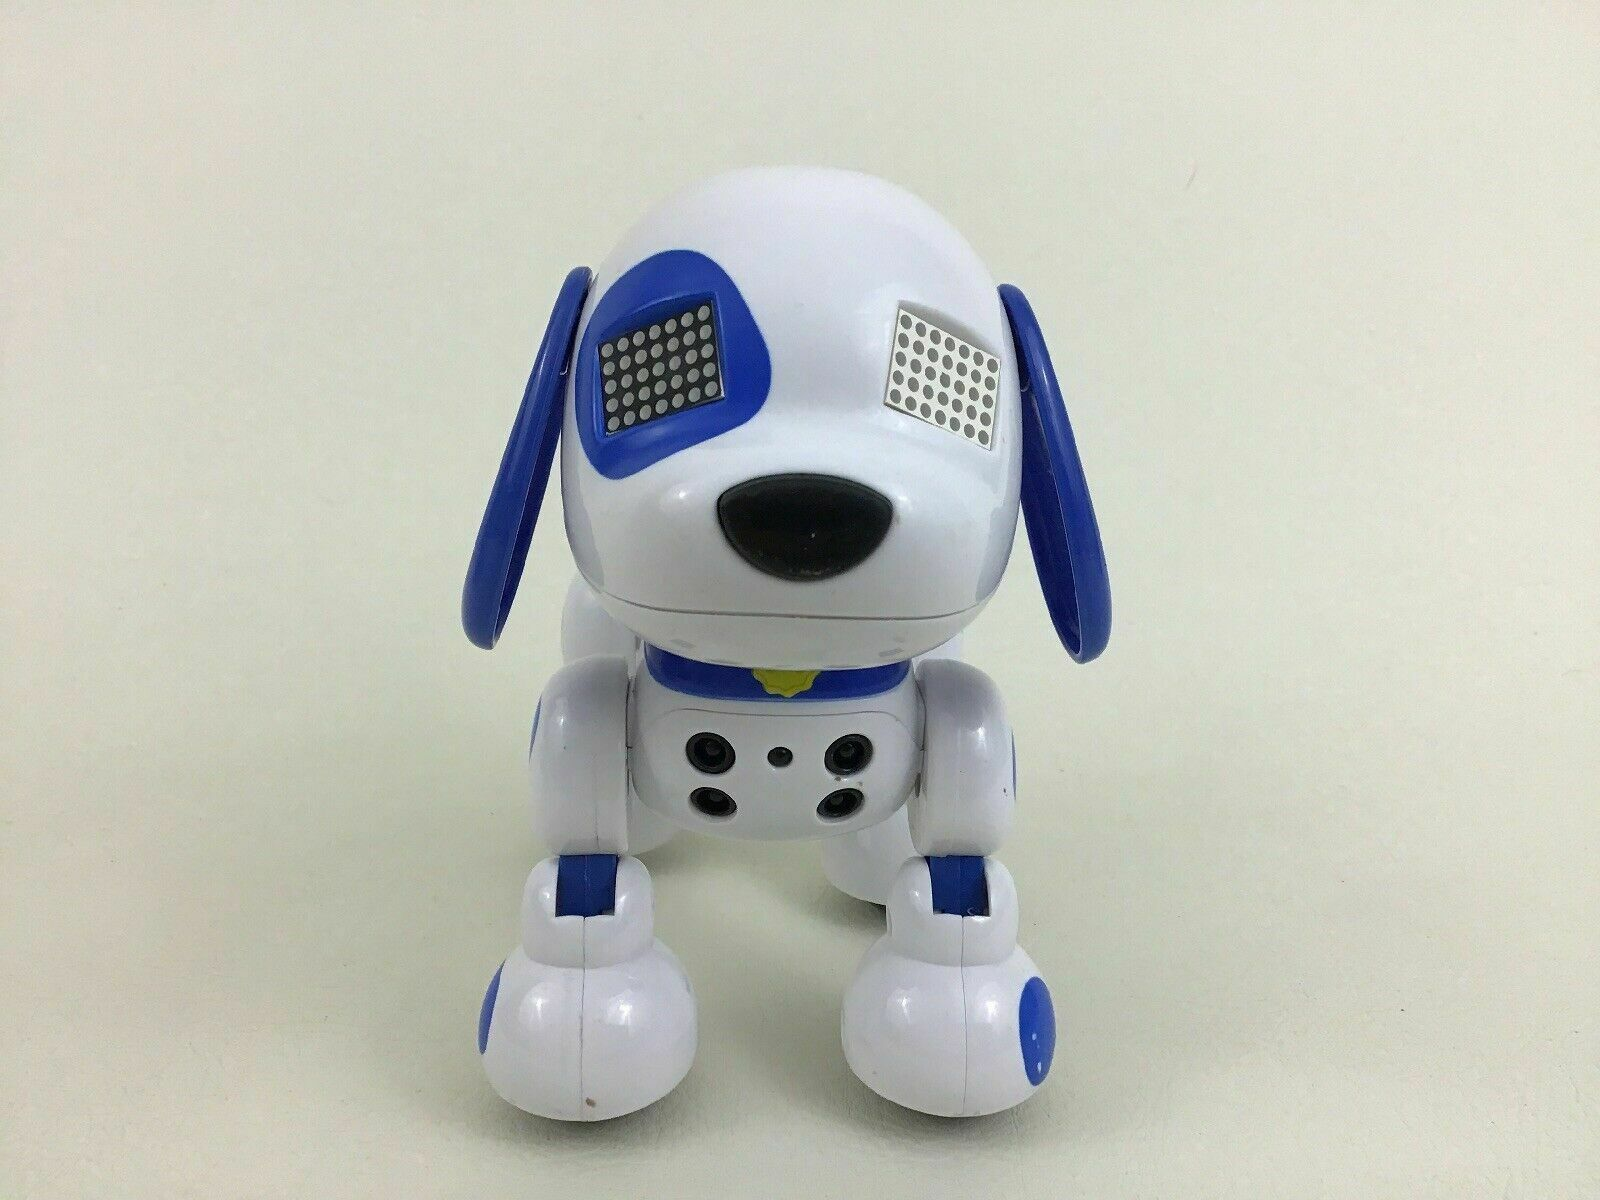 Zoomer Zuppies Puppy Interactive Sport Toy Robot Dog Blue Spin Master